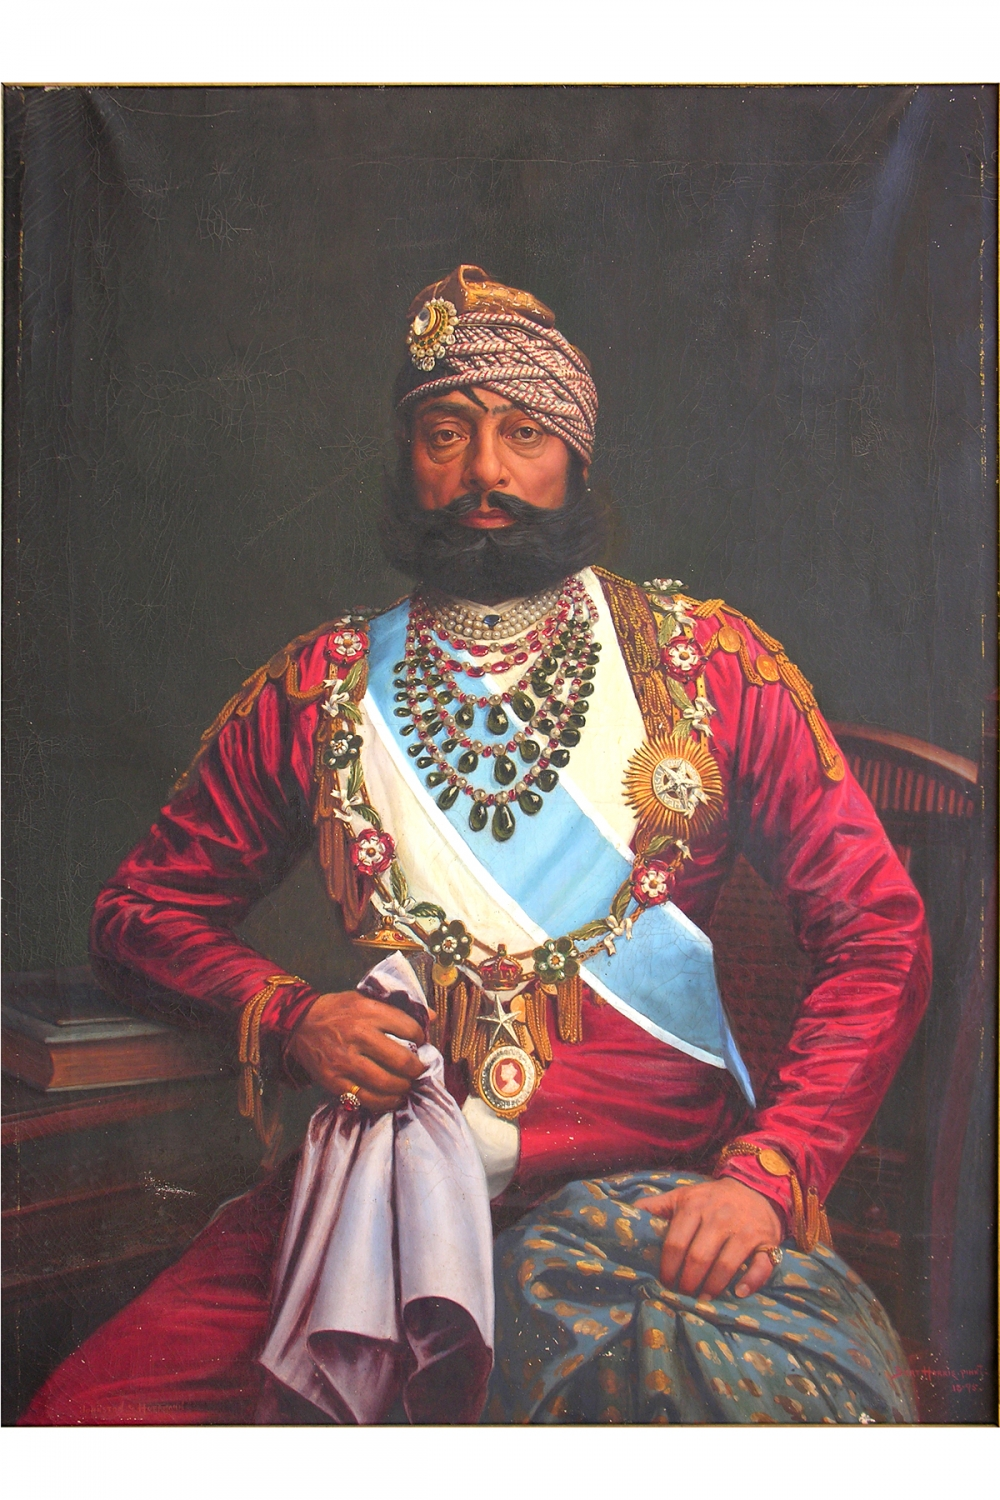 A portrait of Maharaja Jaswant Singh II, by Bert Harris (1895, oil on canvas) (Photo courtesy: Mehrangarh Fort Museum via Laura Marsolek, published with permission)